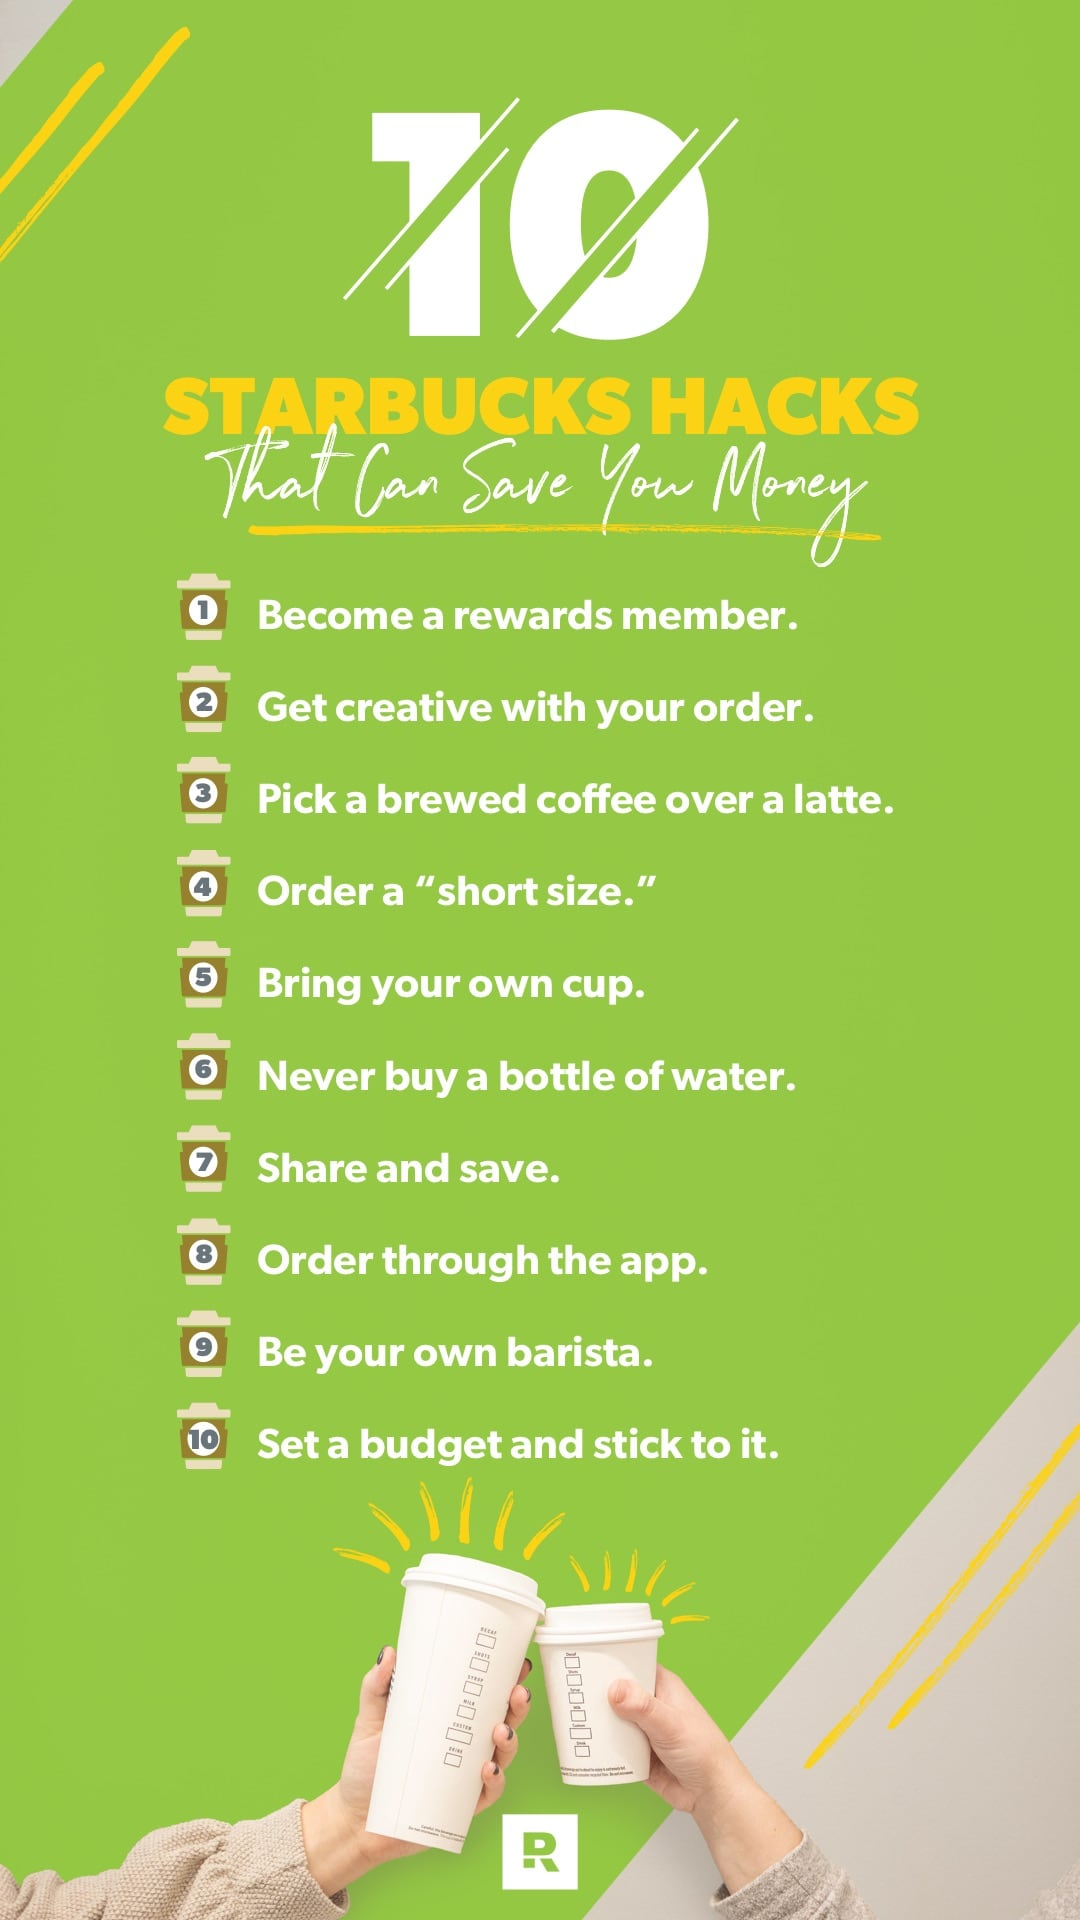 10 Hacks to Save on Starbucks